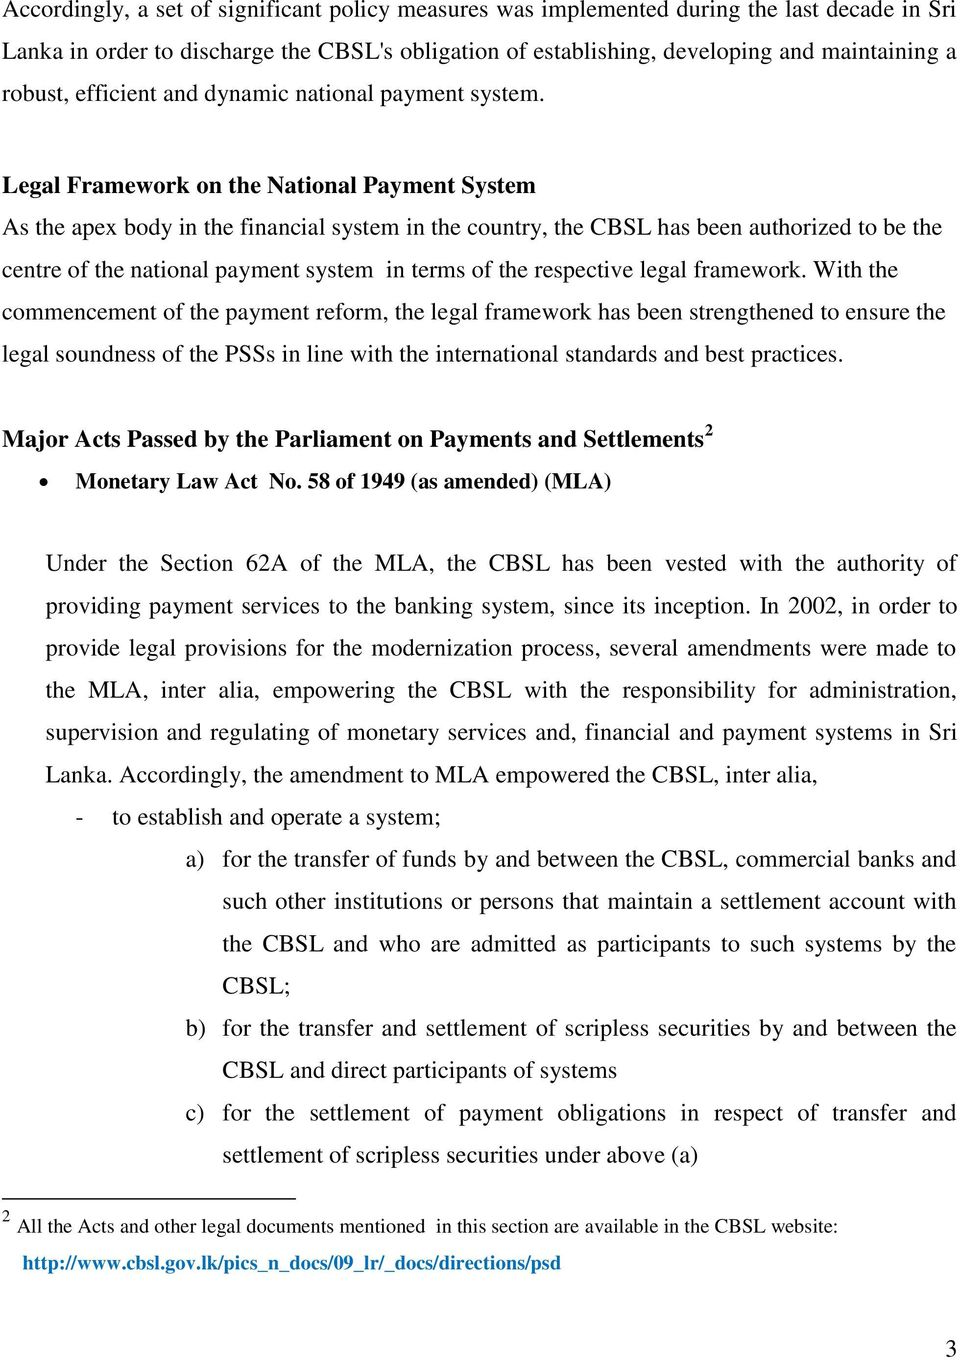 Legal Framework on the National Payment System As the apex body in the financial system in the country, the CBSL has been authorized to be the centre of the national payment system in terms of the